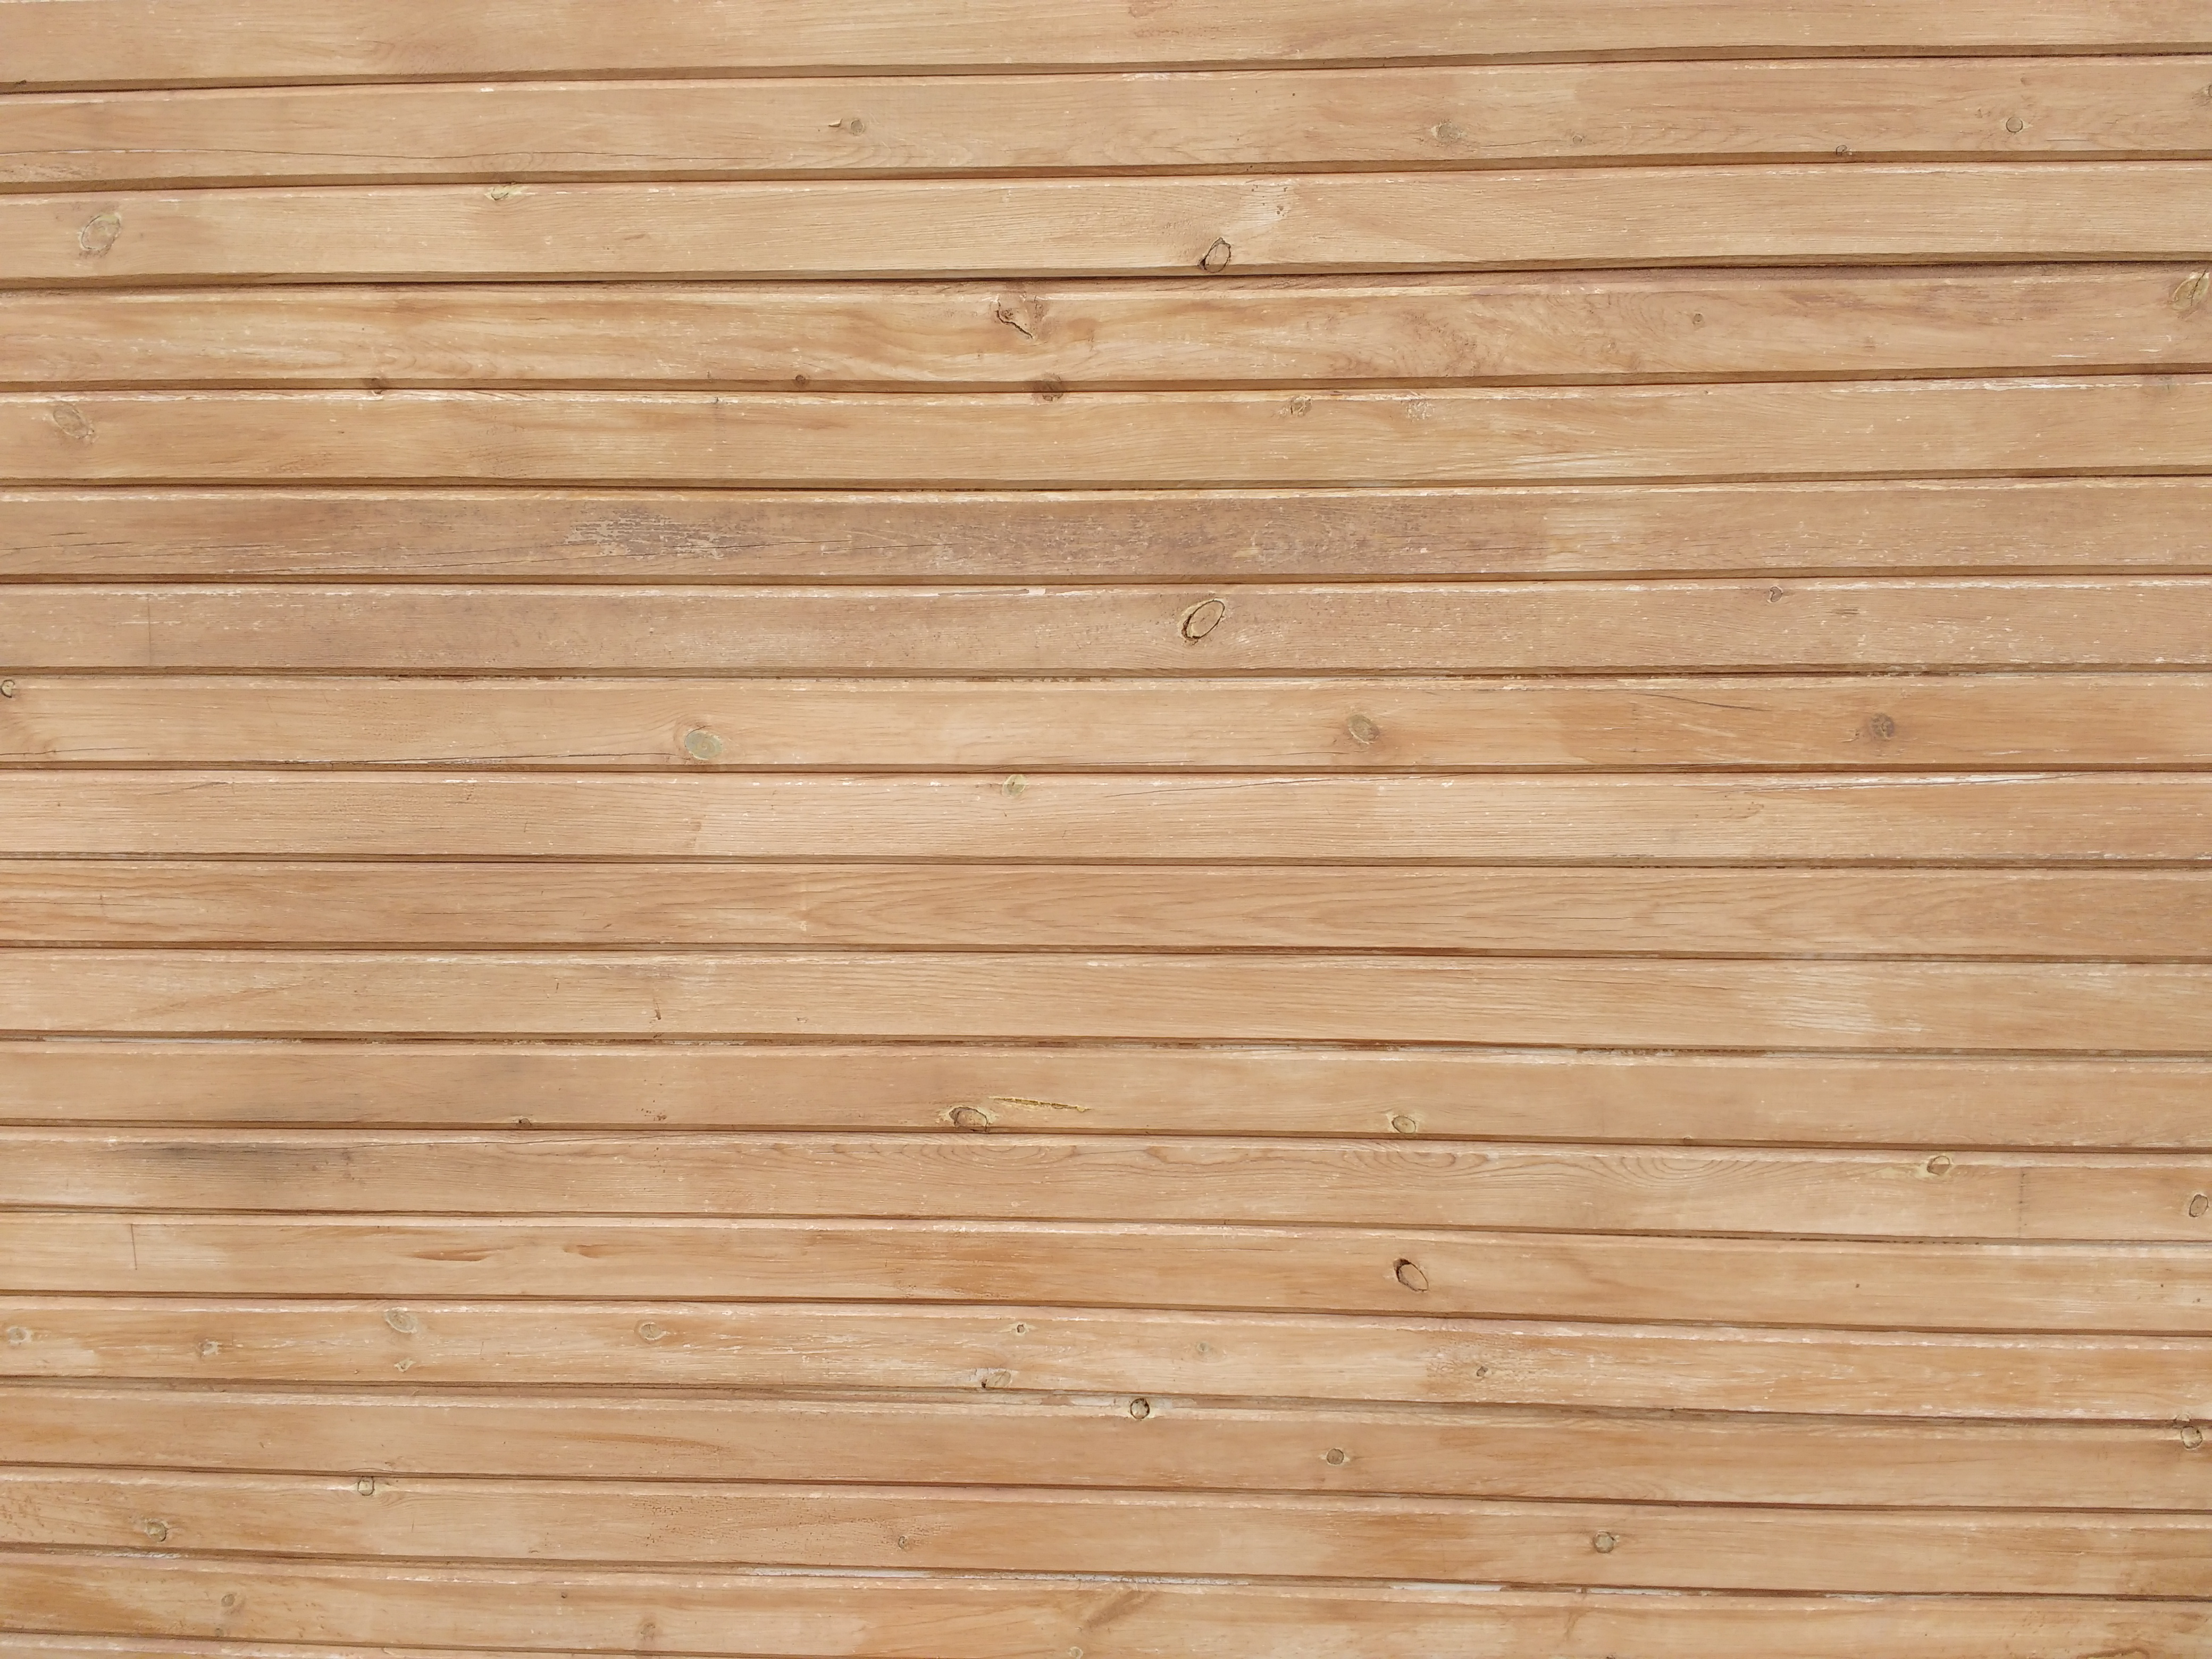 Horizontal Wood Plank Texture Picture | Free Photograph | Photos ...